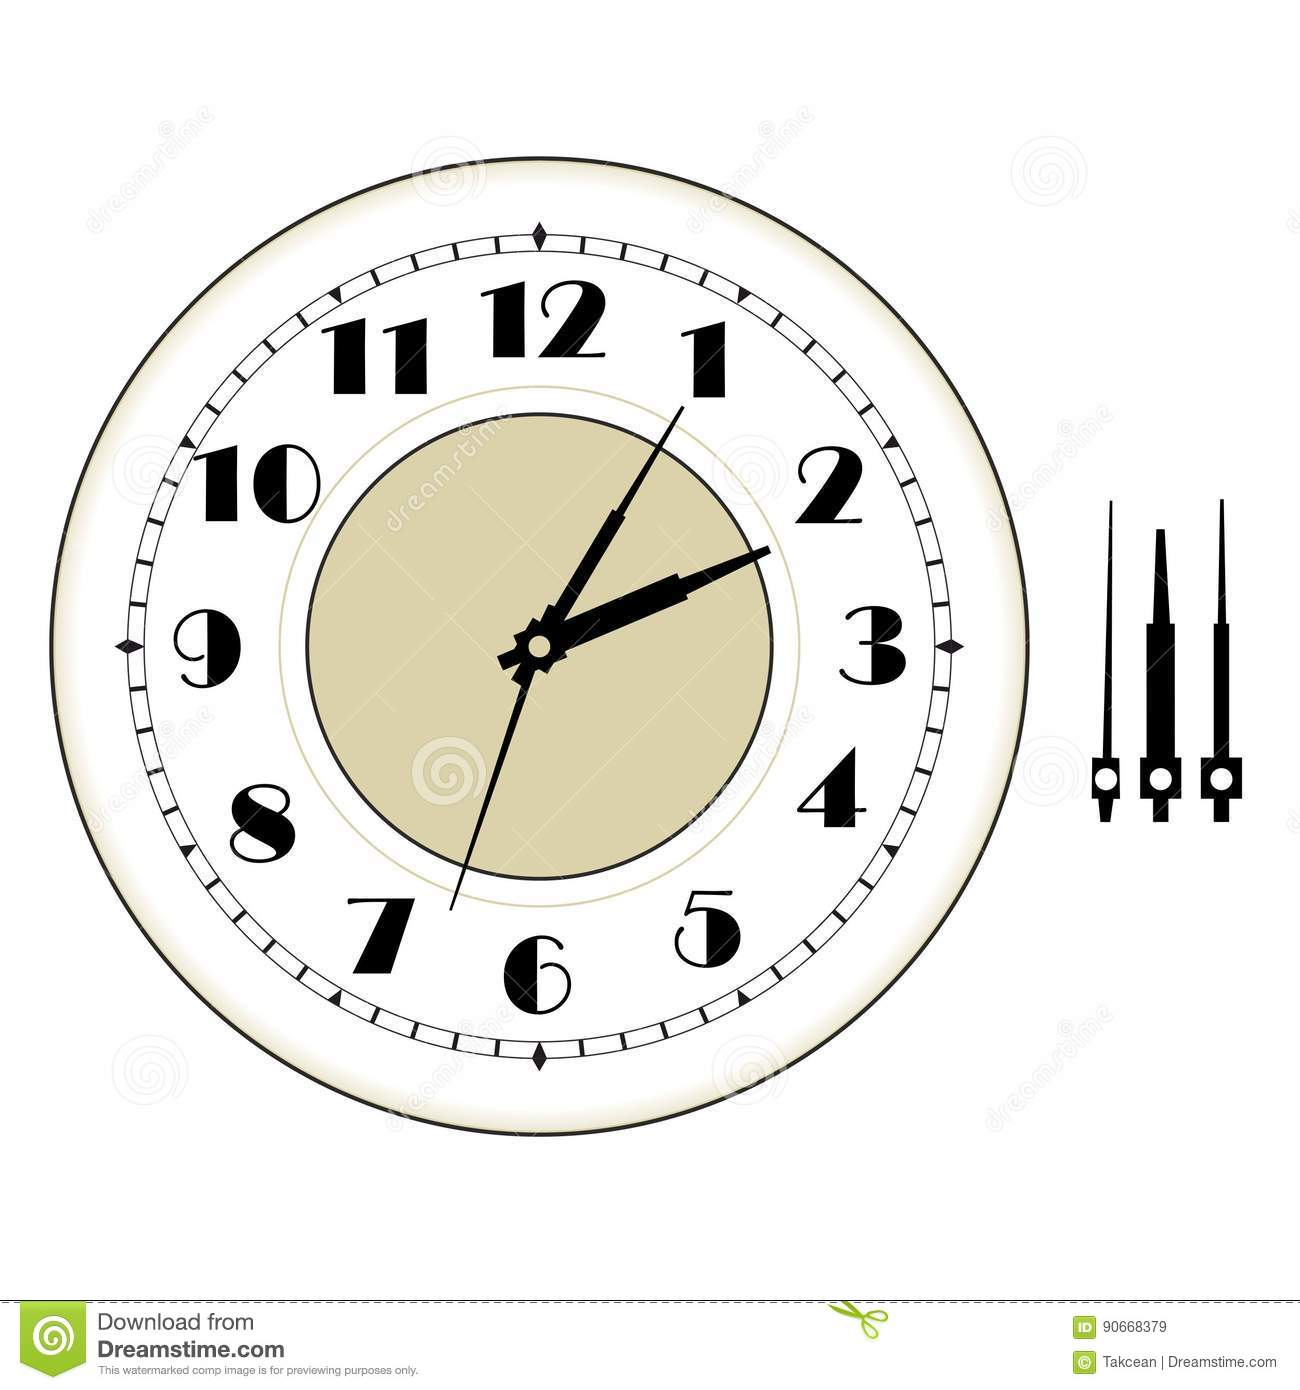 Vintage Clock Face Template Stock Vector - Illustration of hour ...